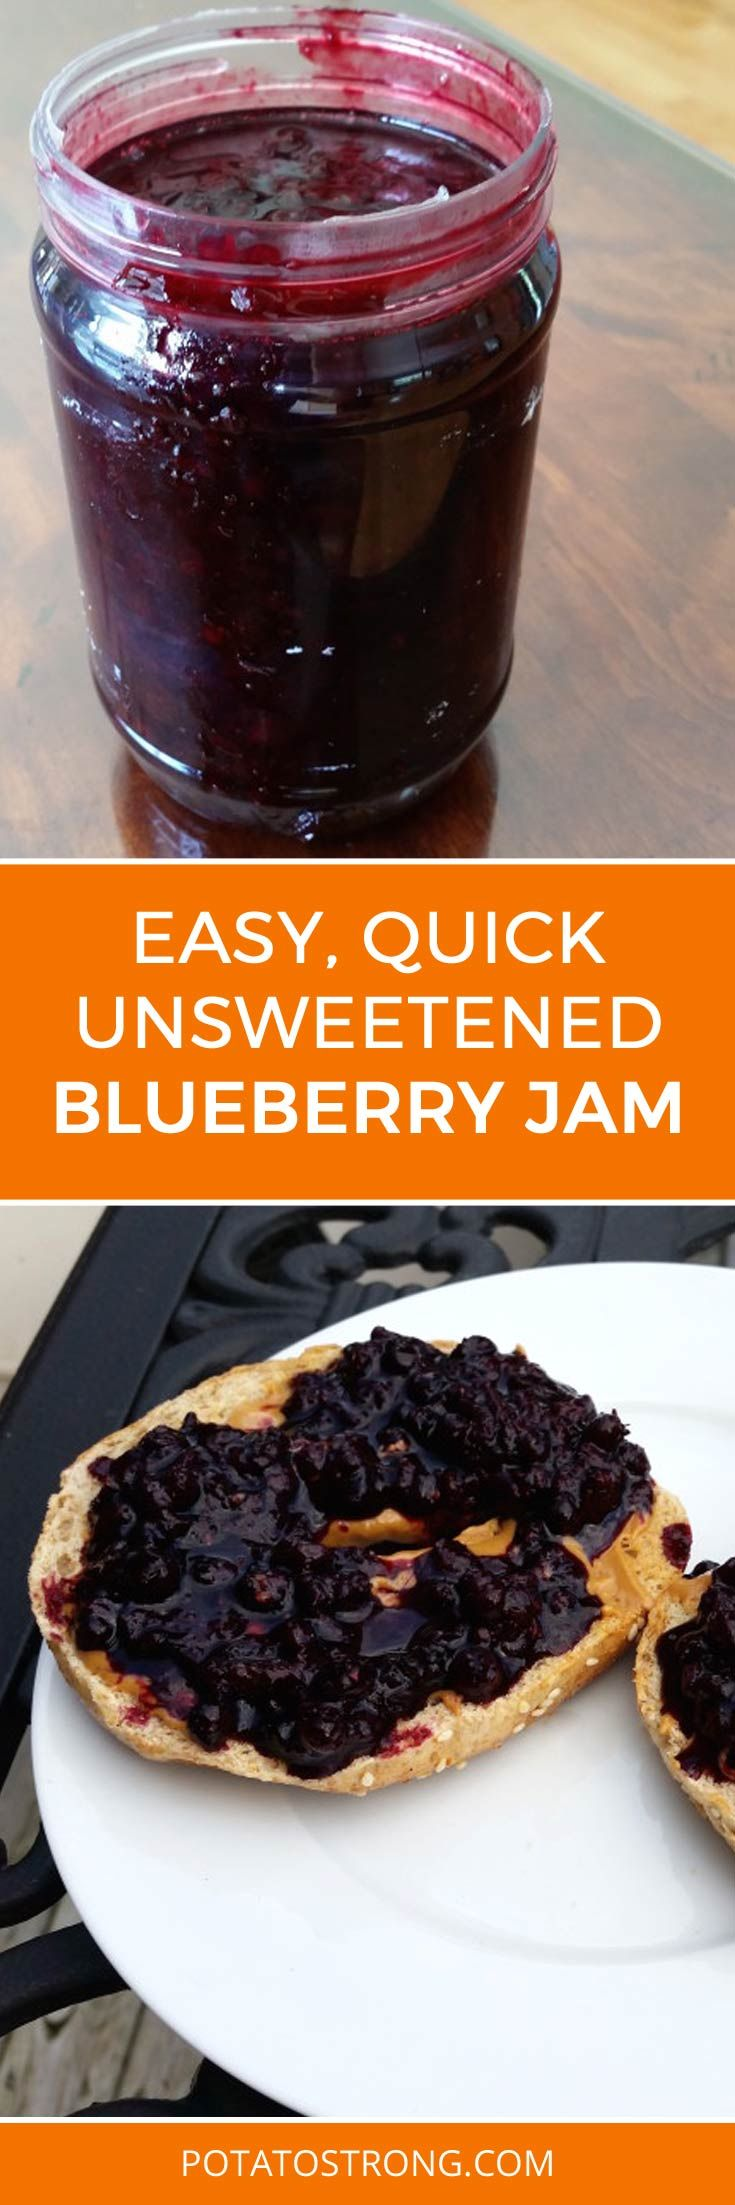 Ingredients: 4 cups of blueberries (I use wild blueberries from here in New Brunswick) 2 tbsp lemon juice 1 package of pectin (57g = 2 oz Certo) Instructions: Put blueberries in a pot with the lemon juice and pectin and bring to a boil on high heat. I mash the blueberries with a plastic potato …